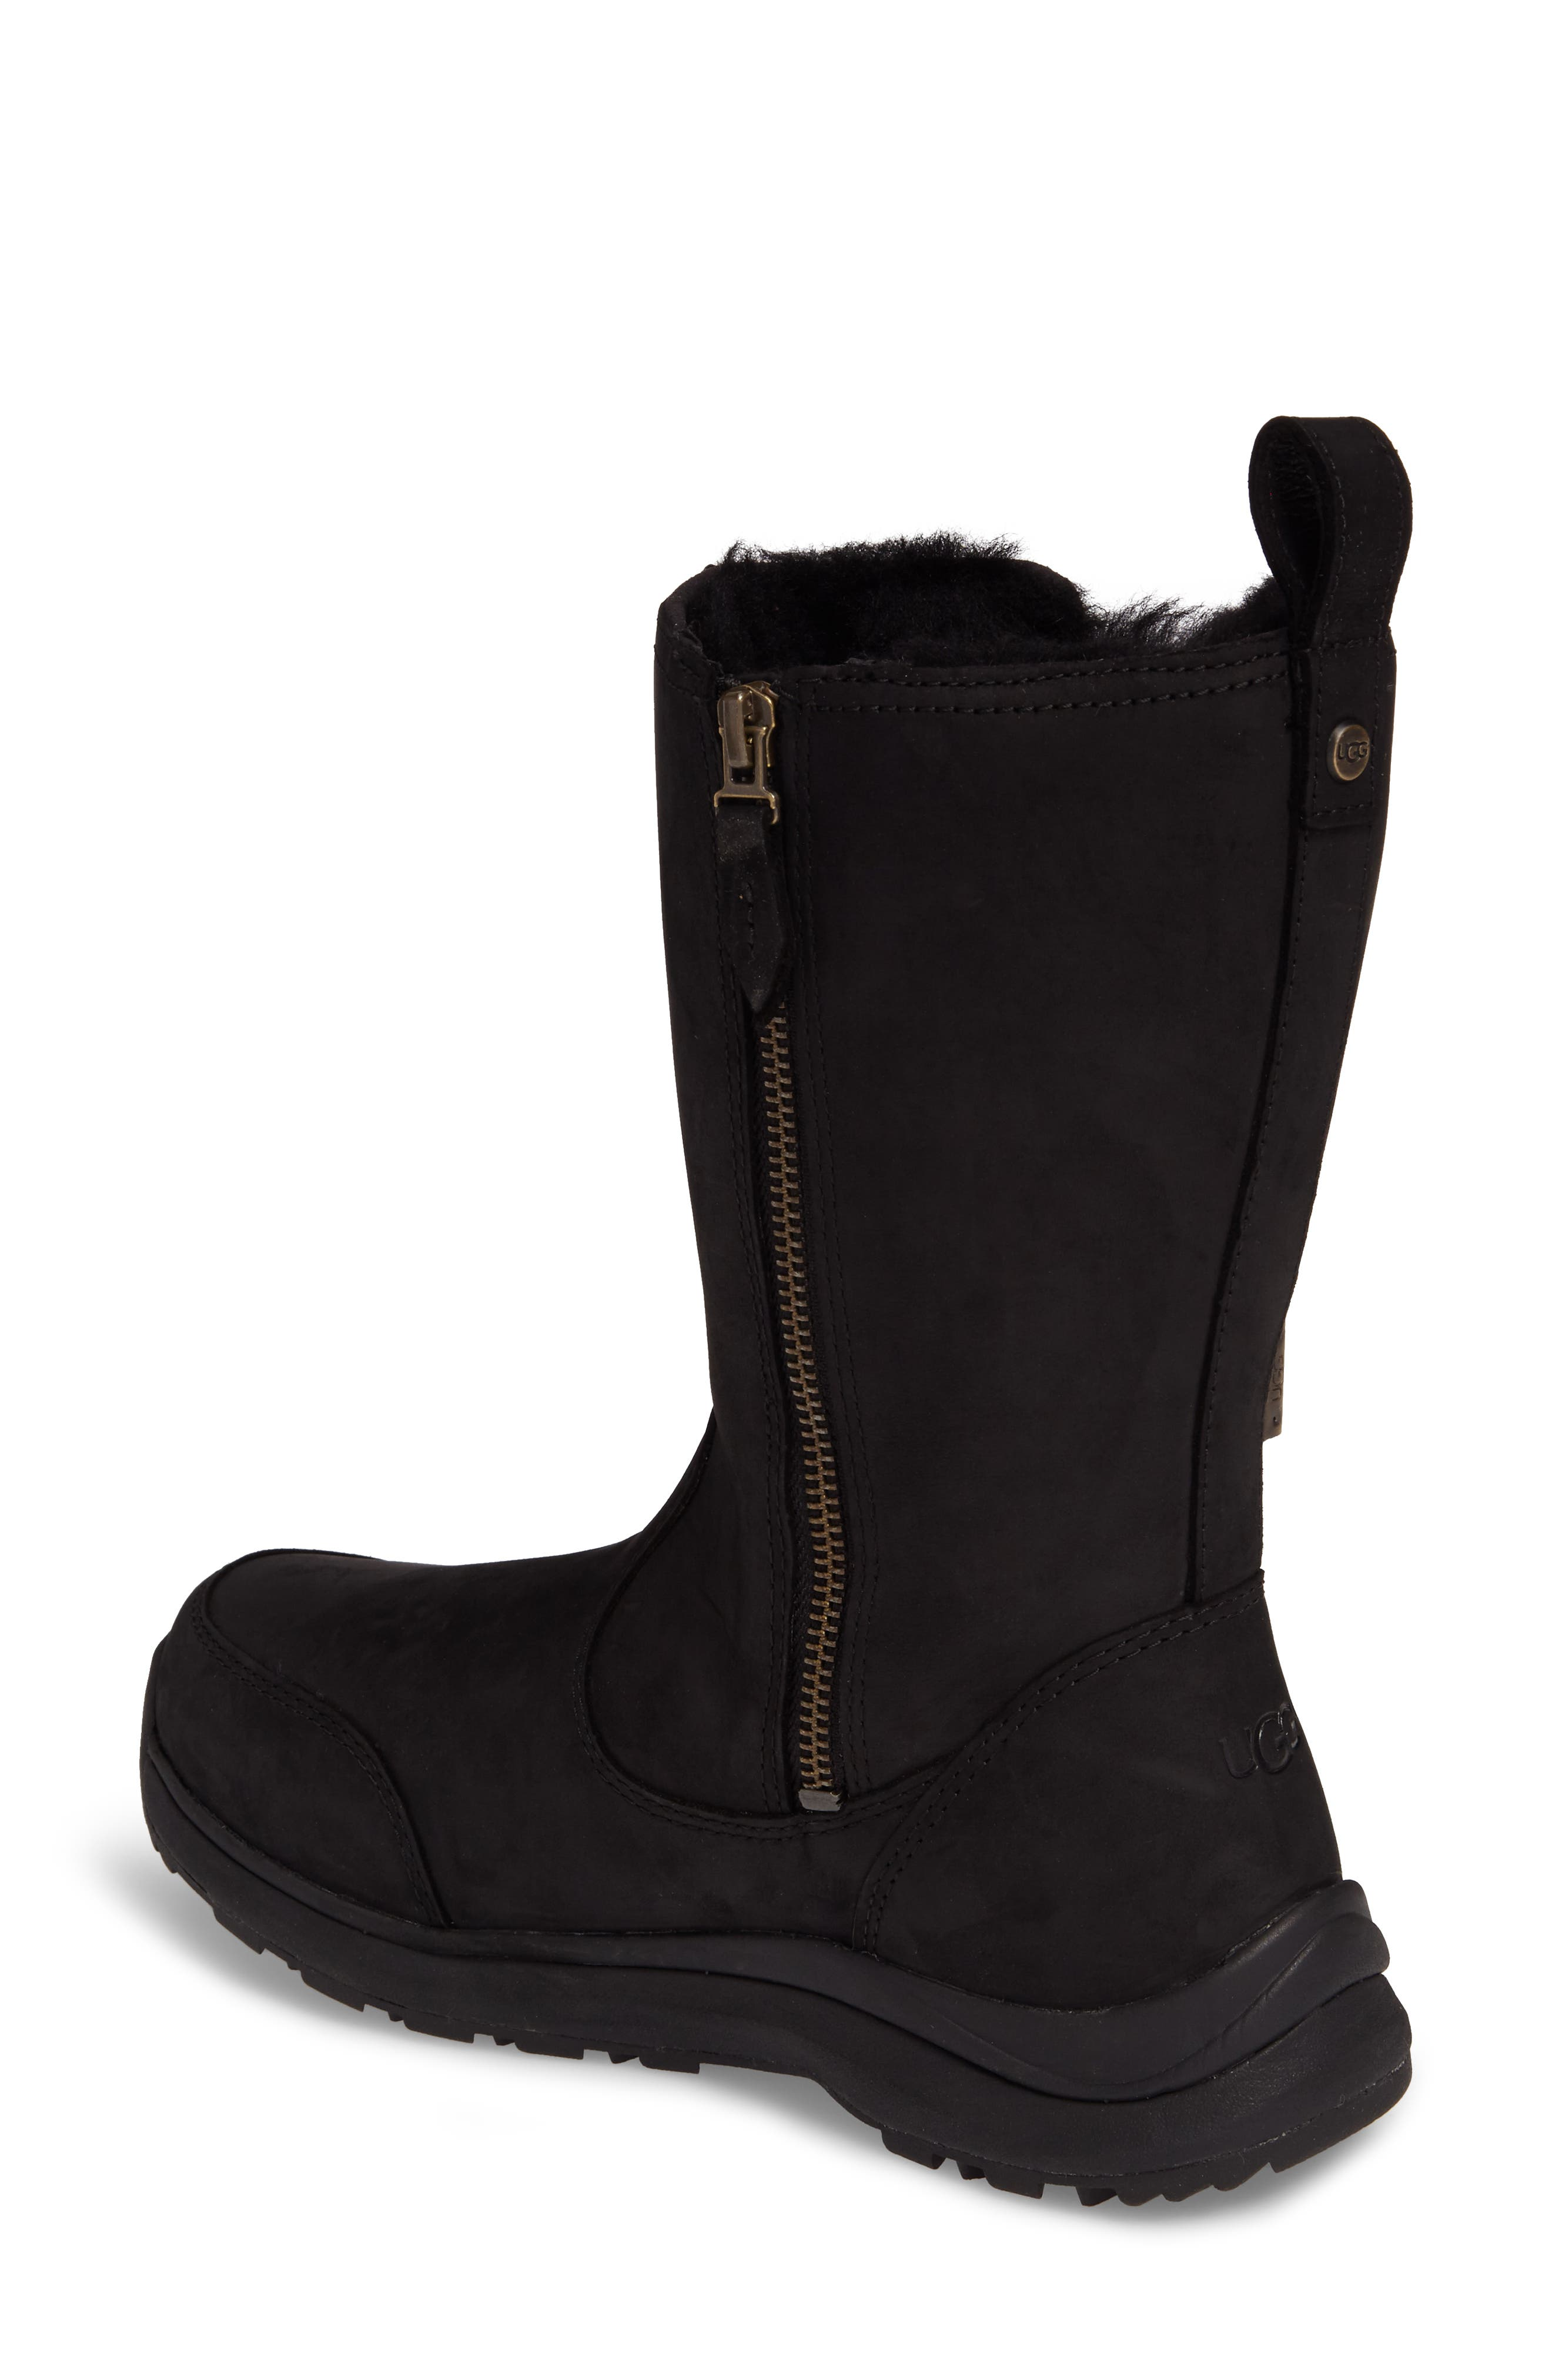 Suvi Waterproof Insulated Winter Boot,                             Alternate thumbnail 2, color,                             Black Leather